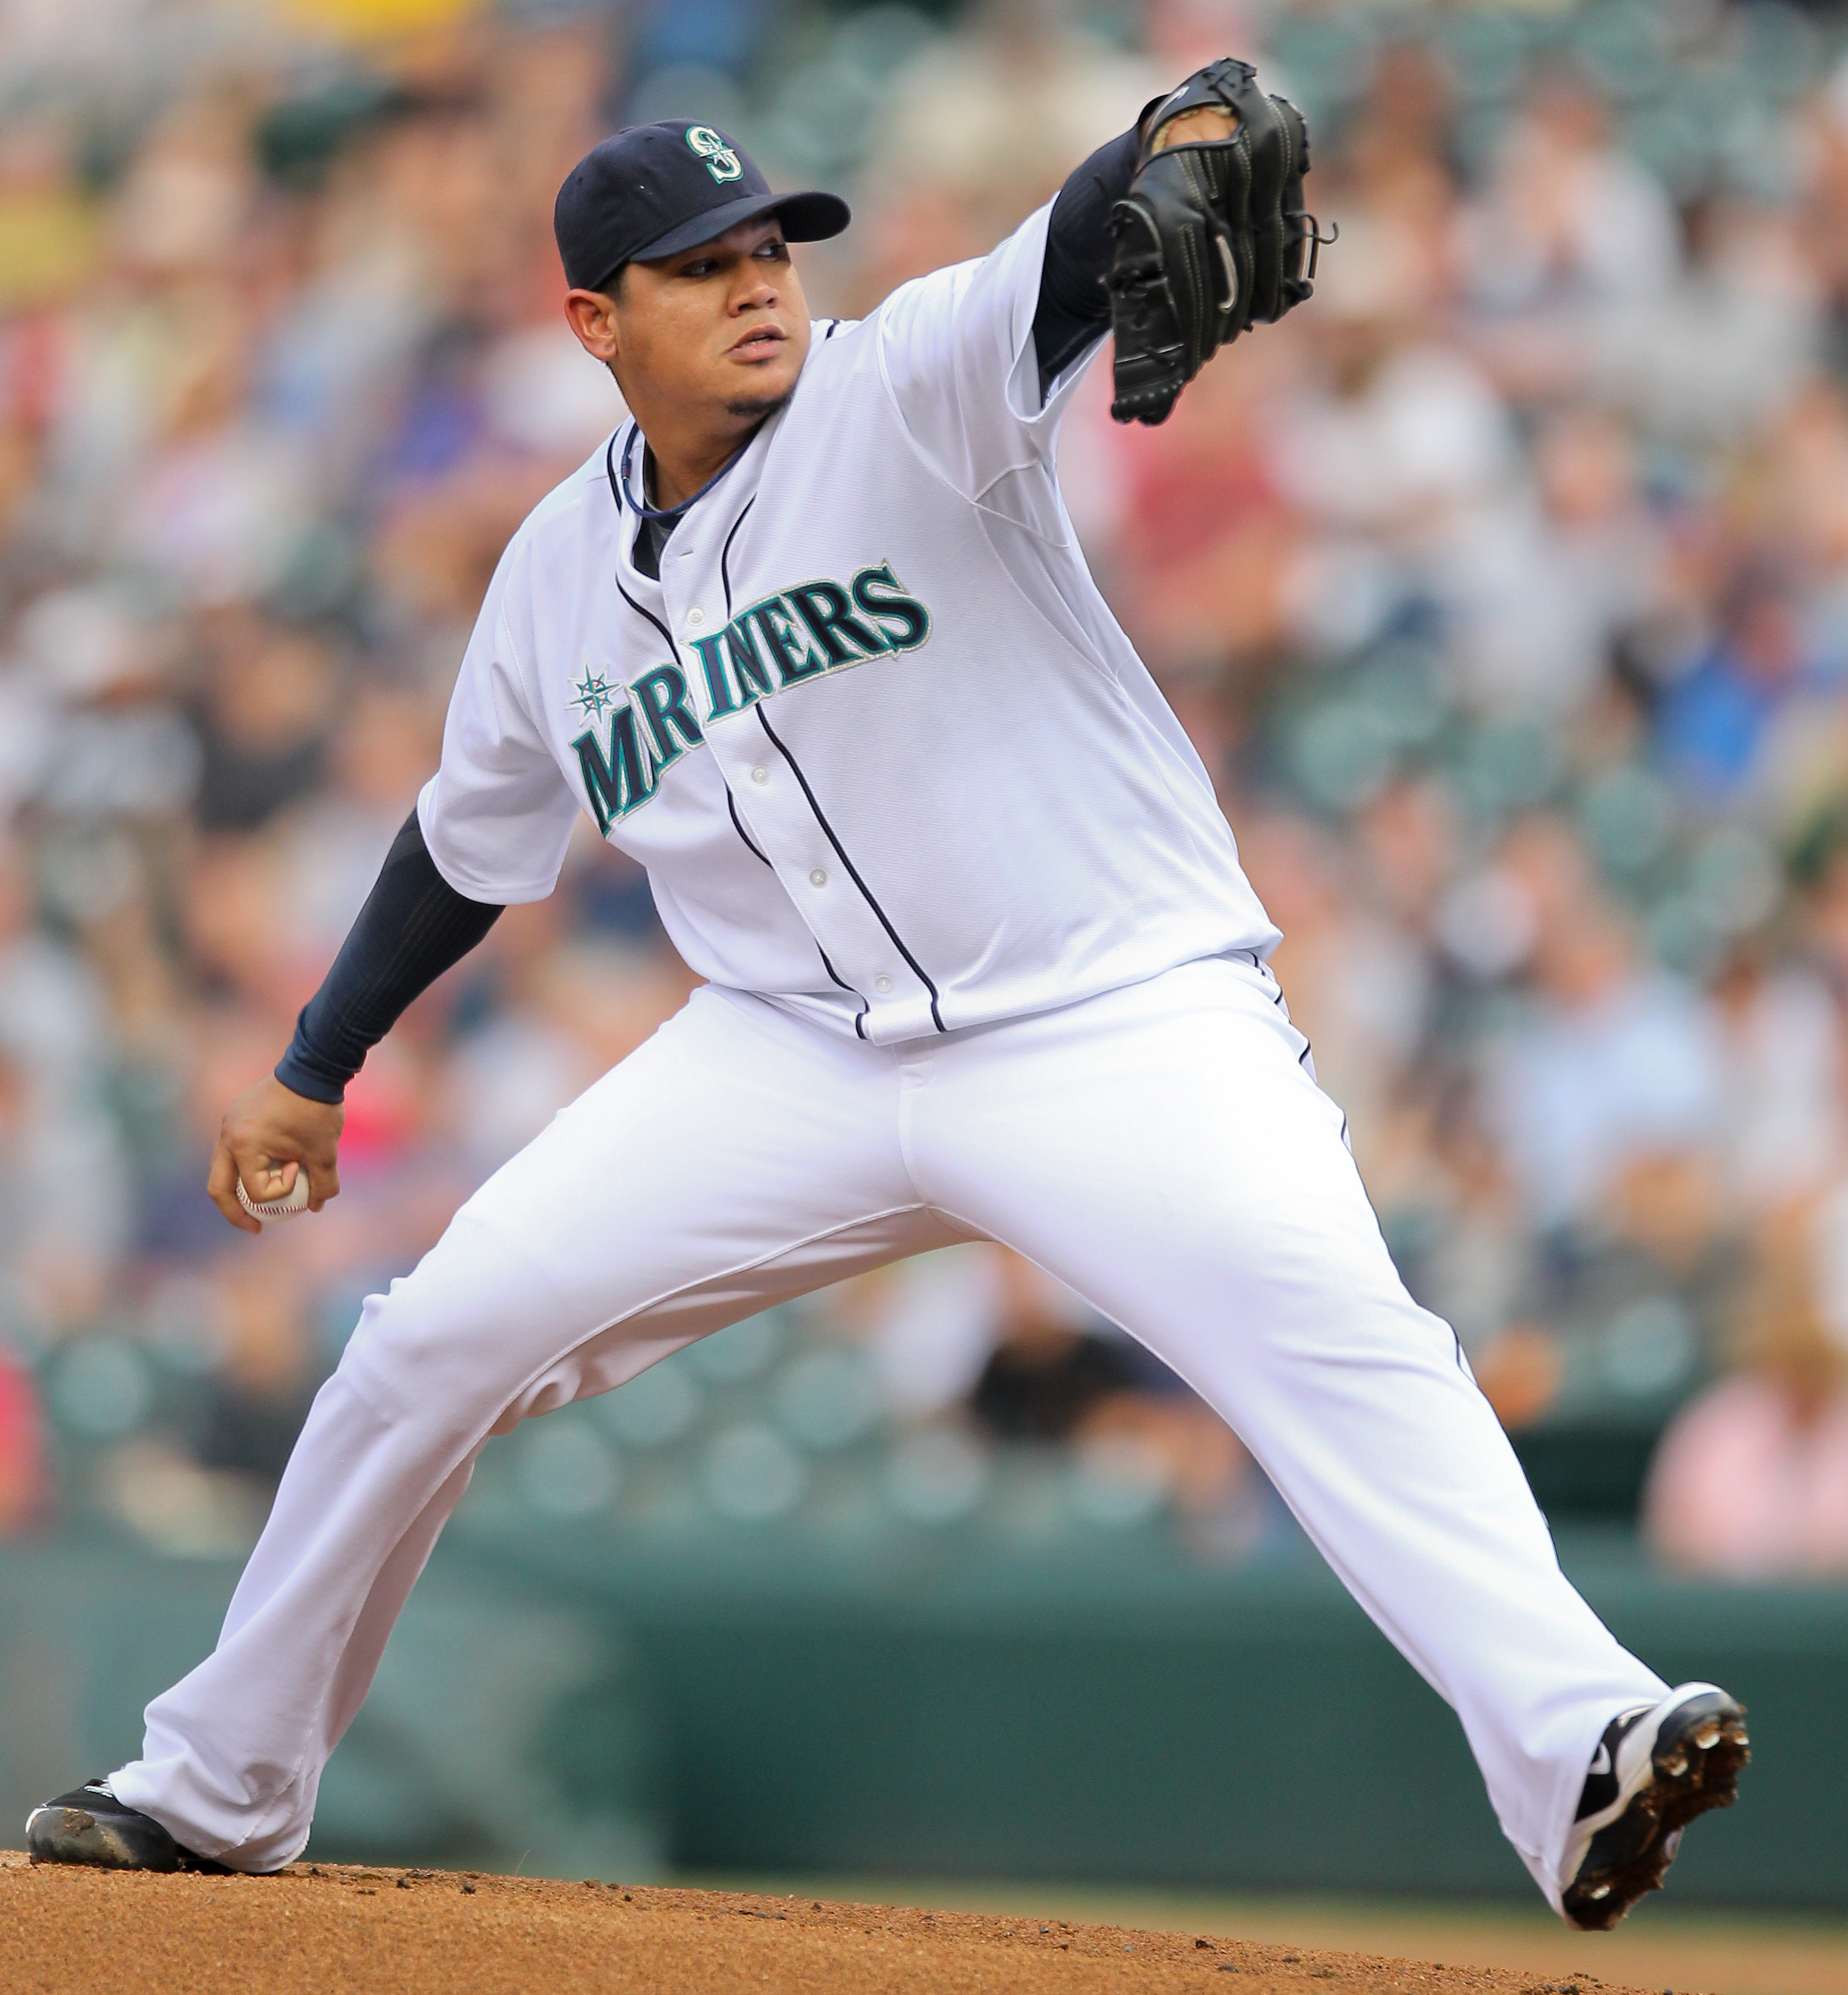 SEATTLE - AUGUST 05:  Starter Felix Hernandez #34 of the Seattle Mariners pitches against the Texas Rangers at Safeco Field on August 5, 2010 in Seattle, Washington. (Photo by Otto Greule Jr/Getty Images)